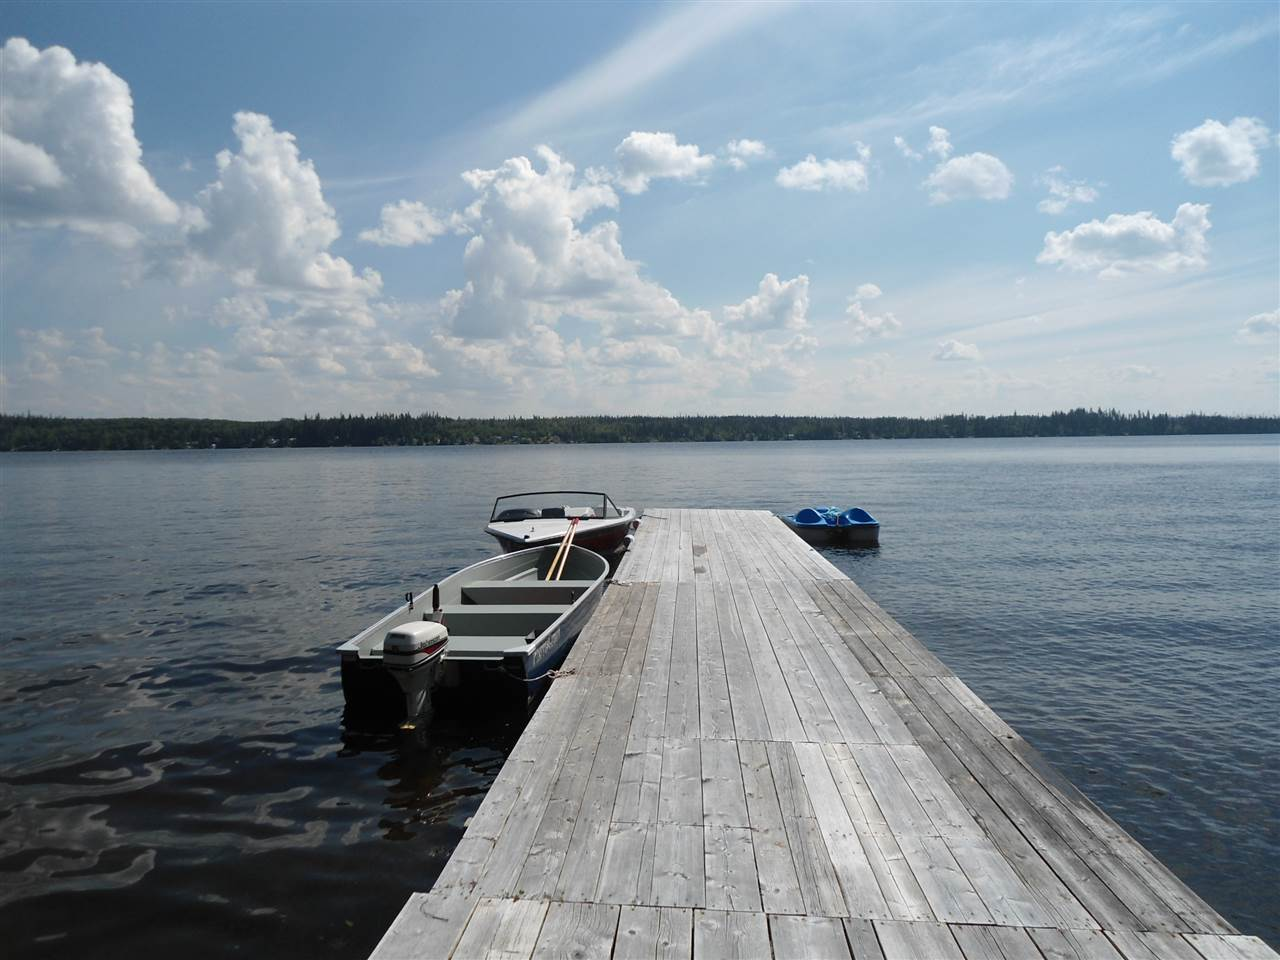 Photo 9: 51435 GUEST Road: Cluculz Lake House for sale (PG Rural West (Zone 77))  : MLS(r) # R2092121